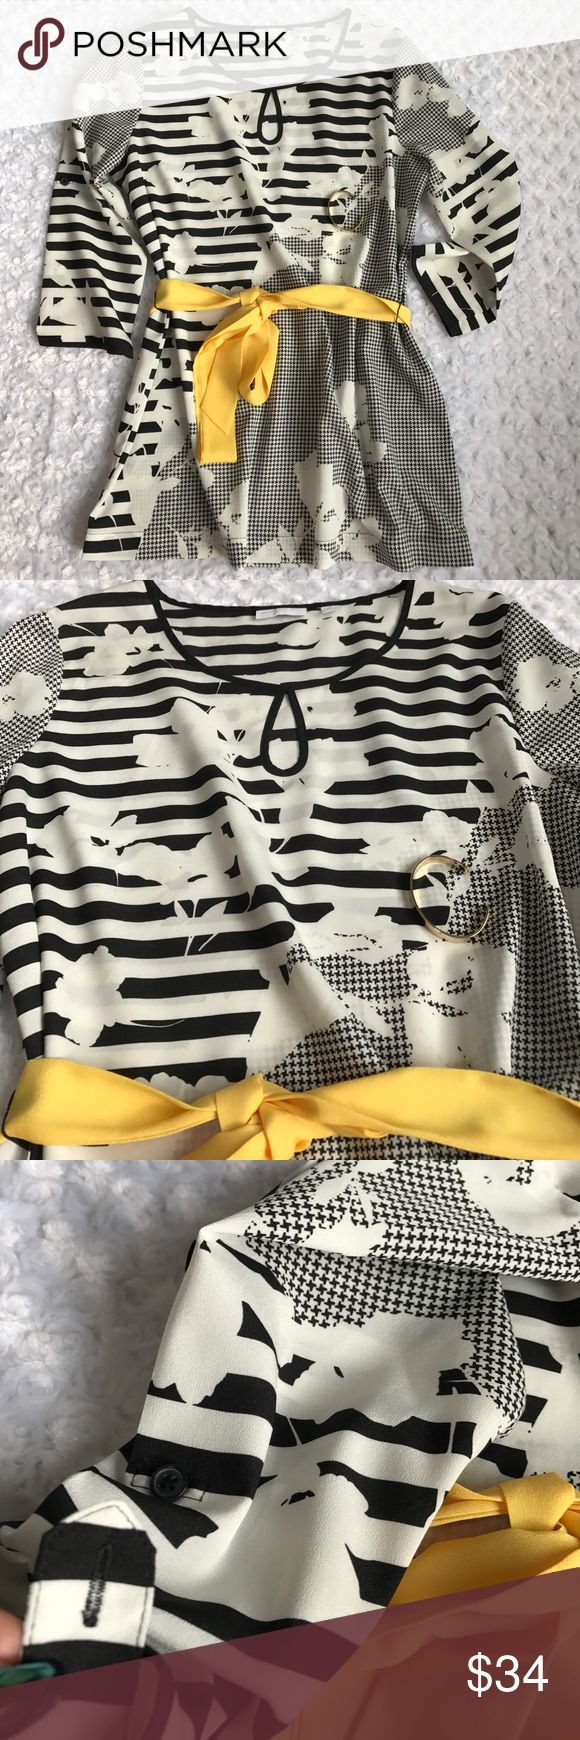 """•51• NEW YORK & CO BLACK WHITE TUNIC TOP If you love tunics like me: ❤️ This has a beautiful floral print with a twist of stripes and houndstooth. 3/4 sleeves with tab a button to shorten. Round neck with keyhole. The yellow belt is such a great accent color. What's nice is you can always add your own color belt to this. Length 28"""" Bust 20"""" Waist 20"""". Polyester. New York & Company Tops"""